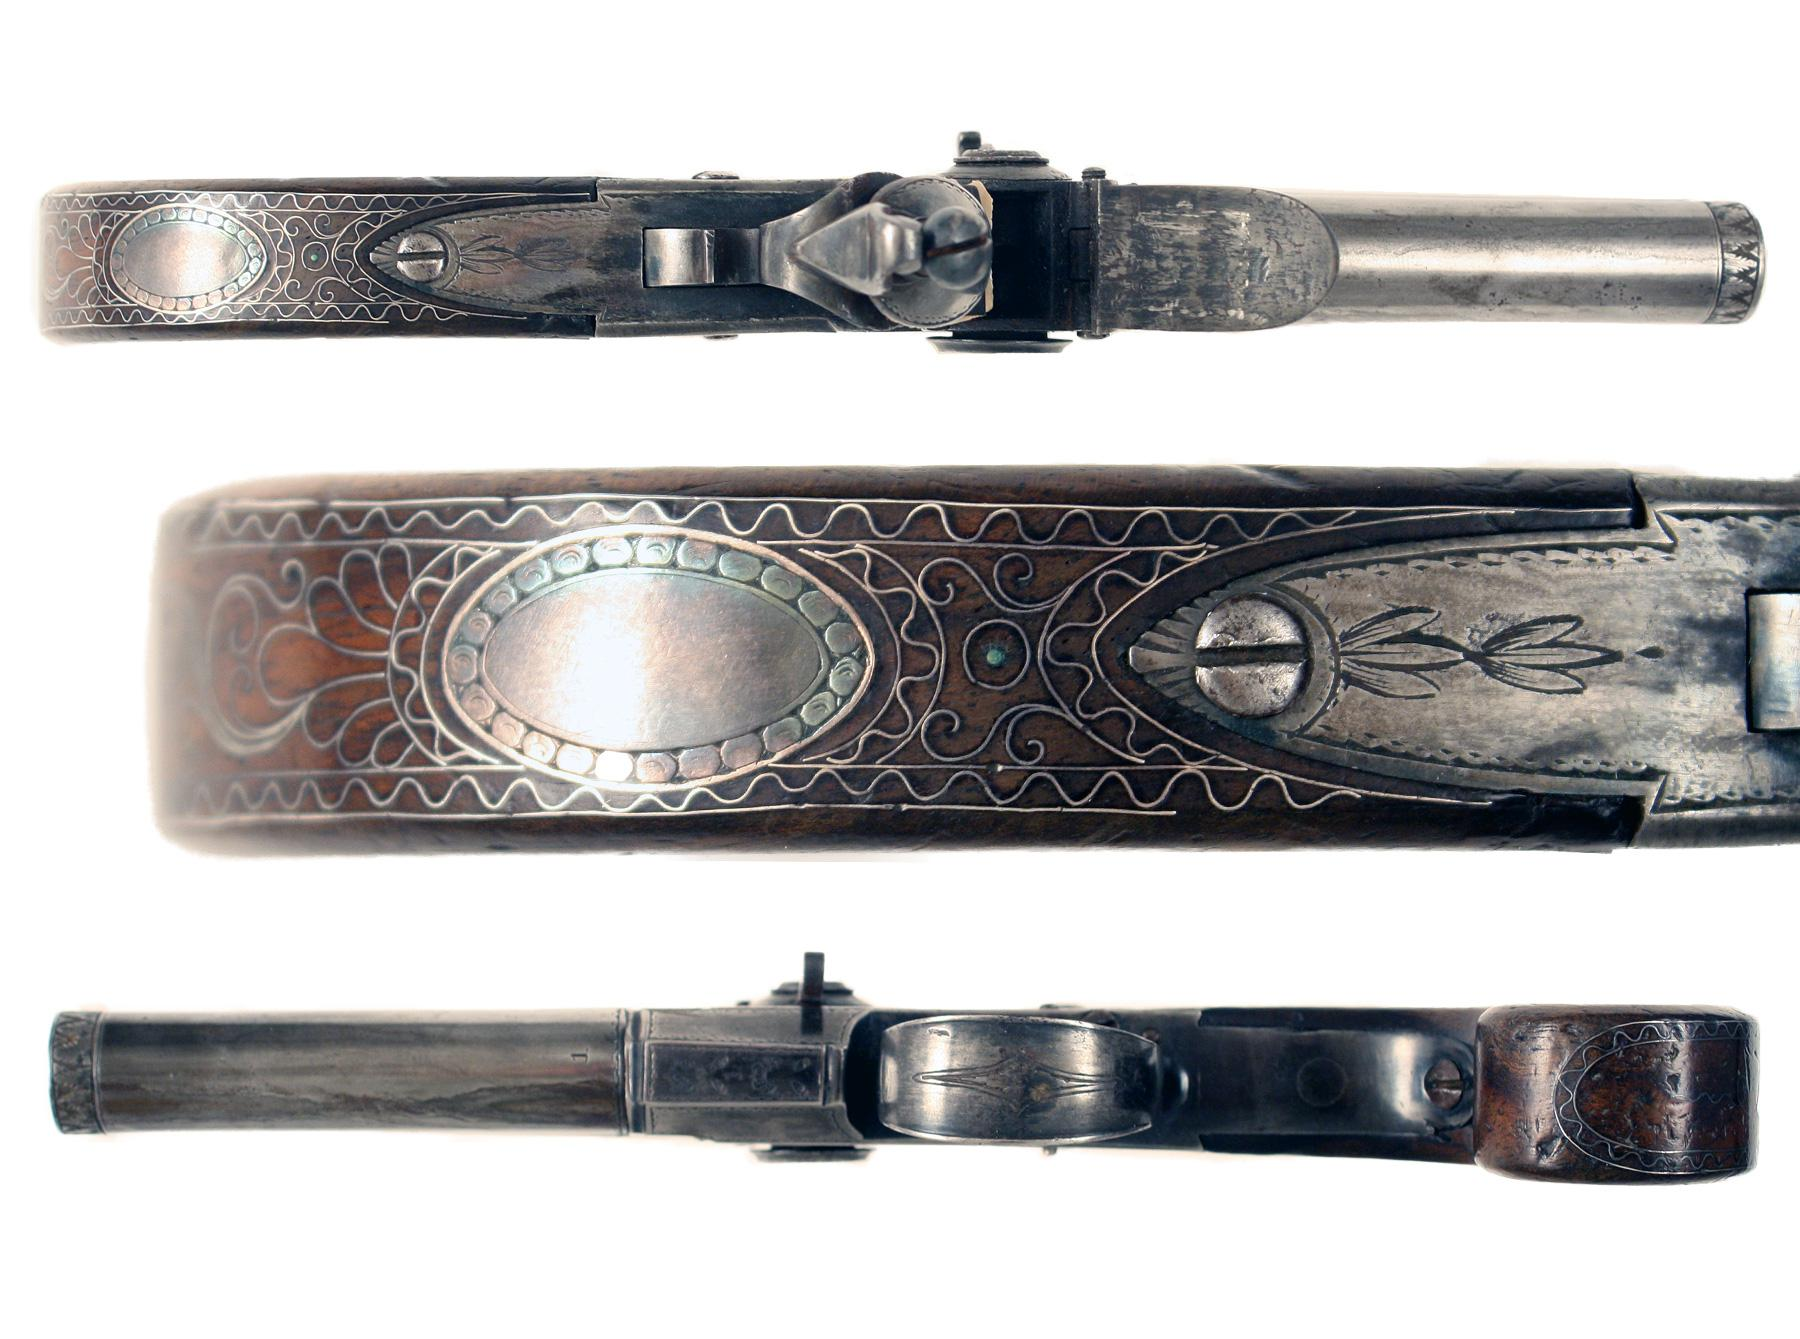 A Silver Inlaid Over & Under Pistol by Probin